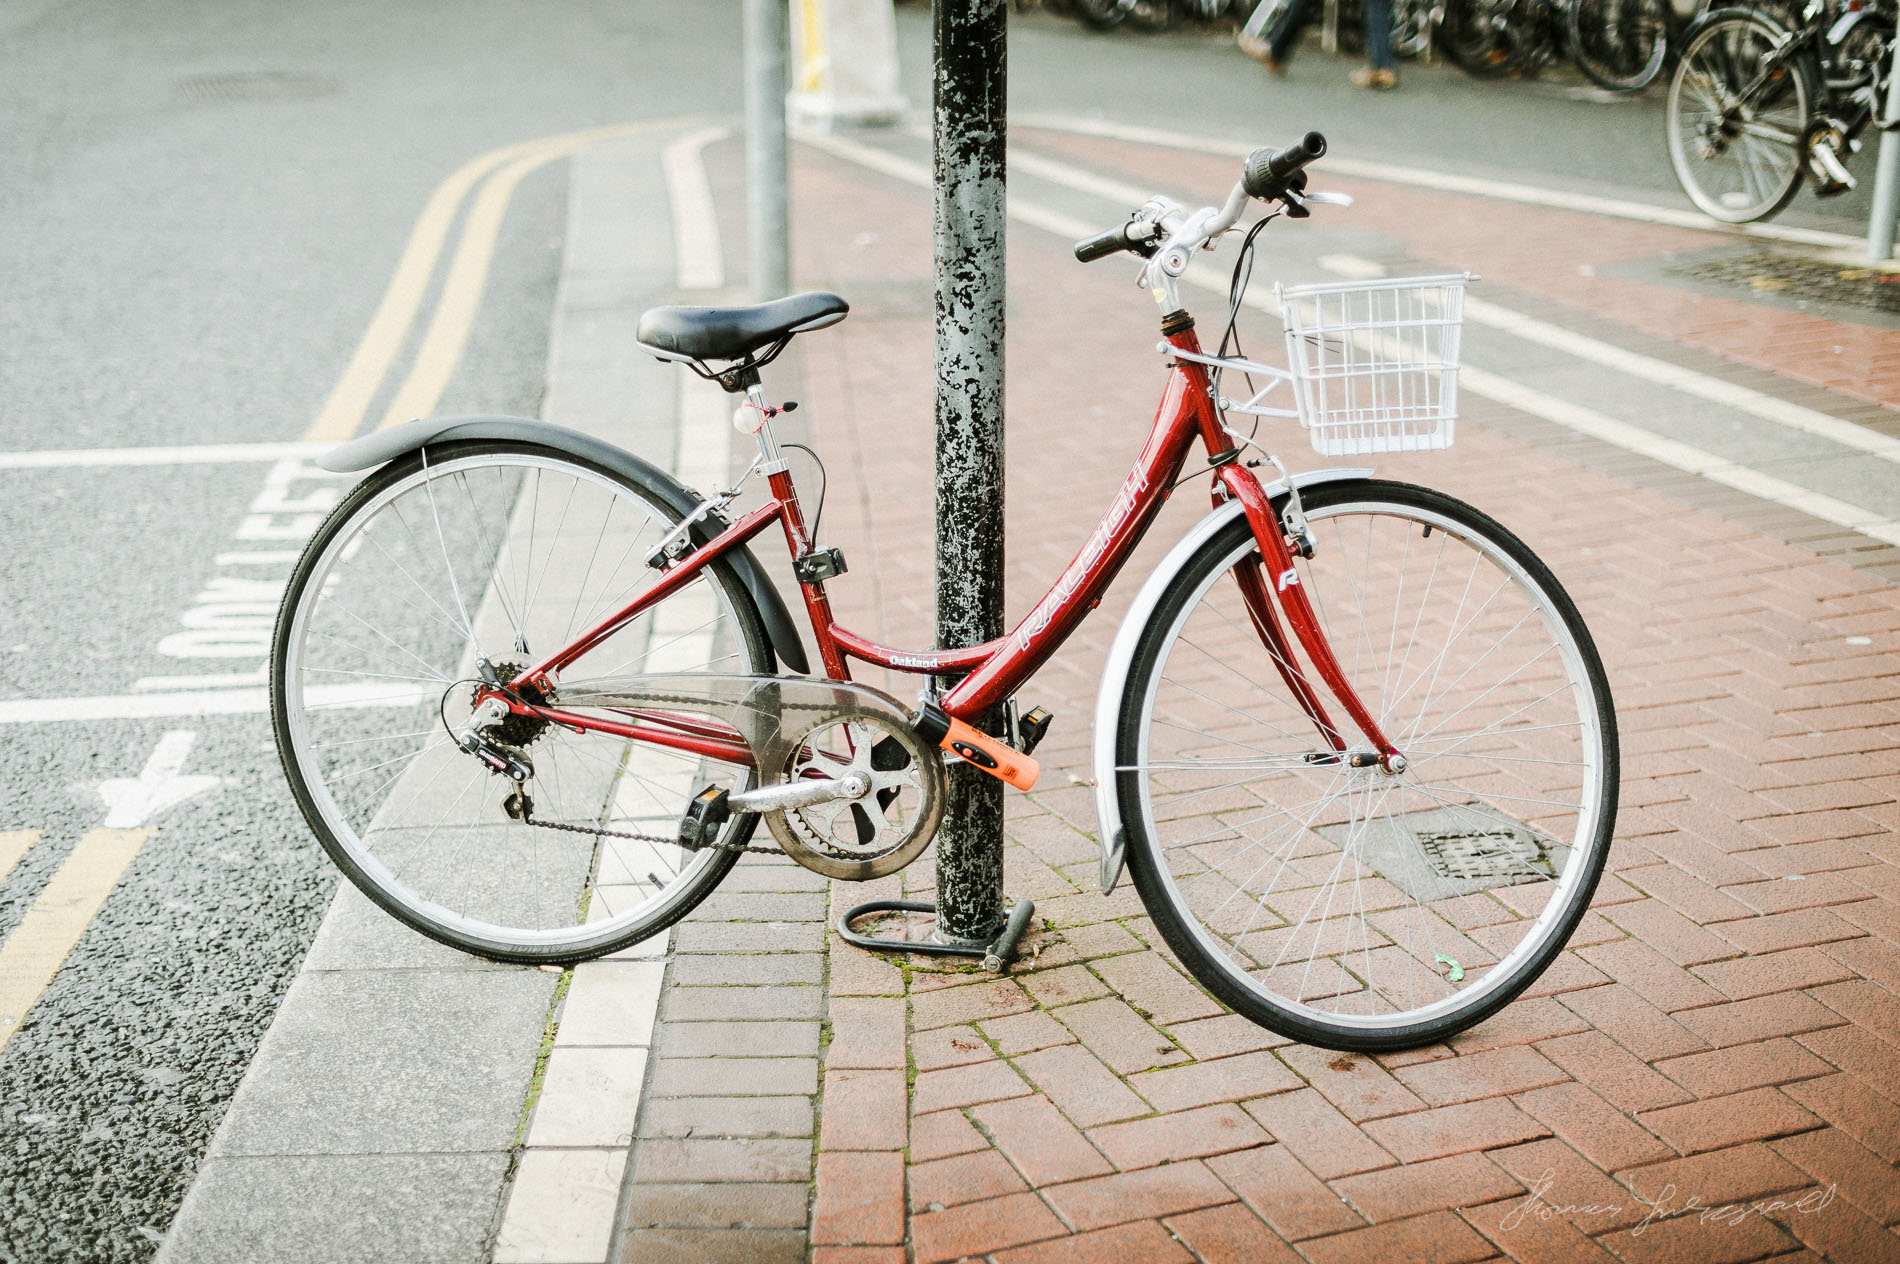 Photograph of Bright Red Bicycle